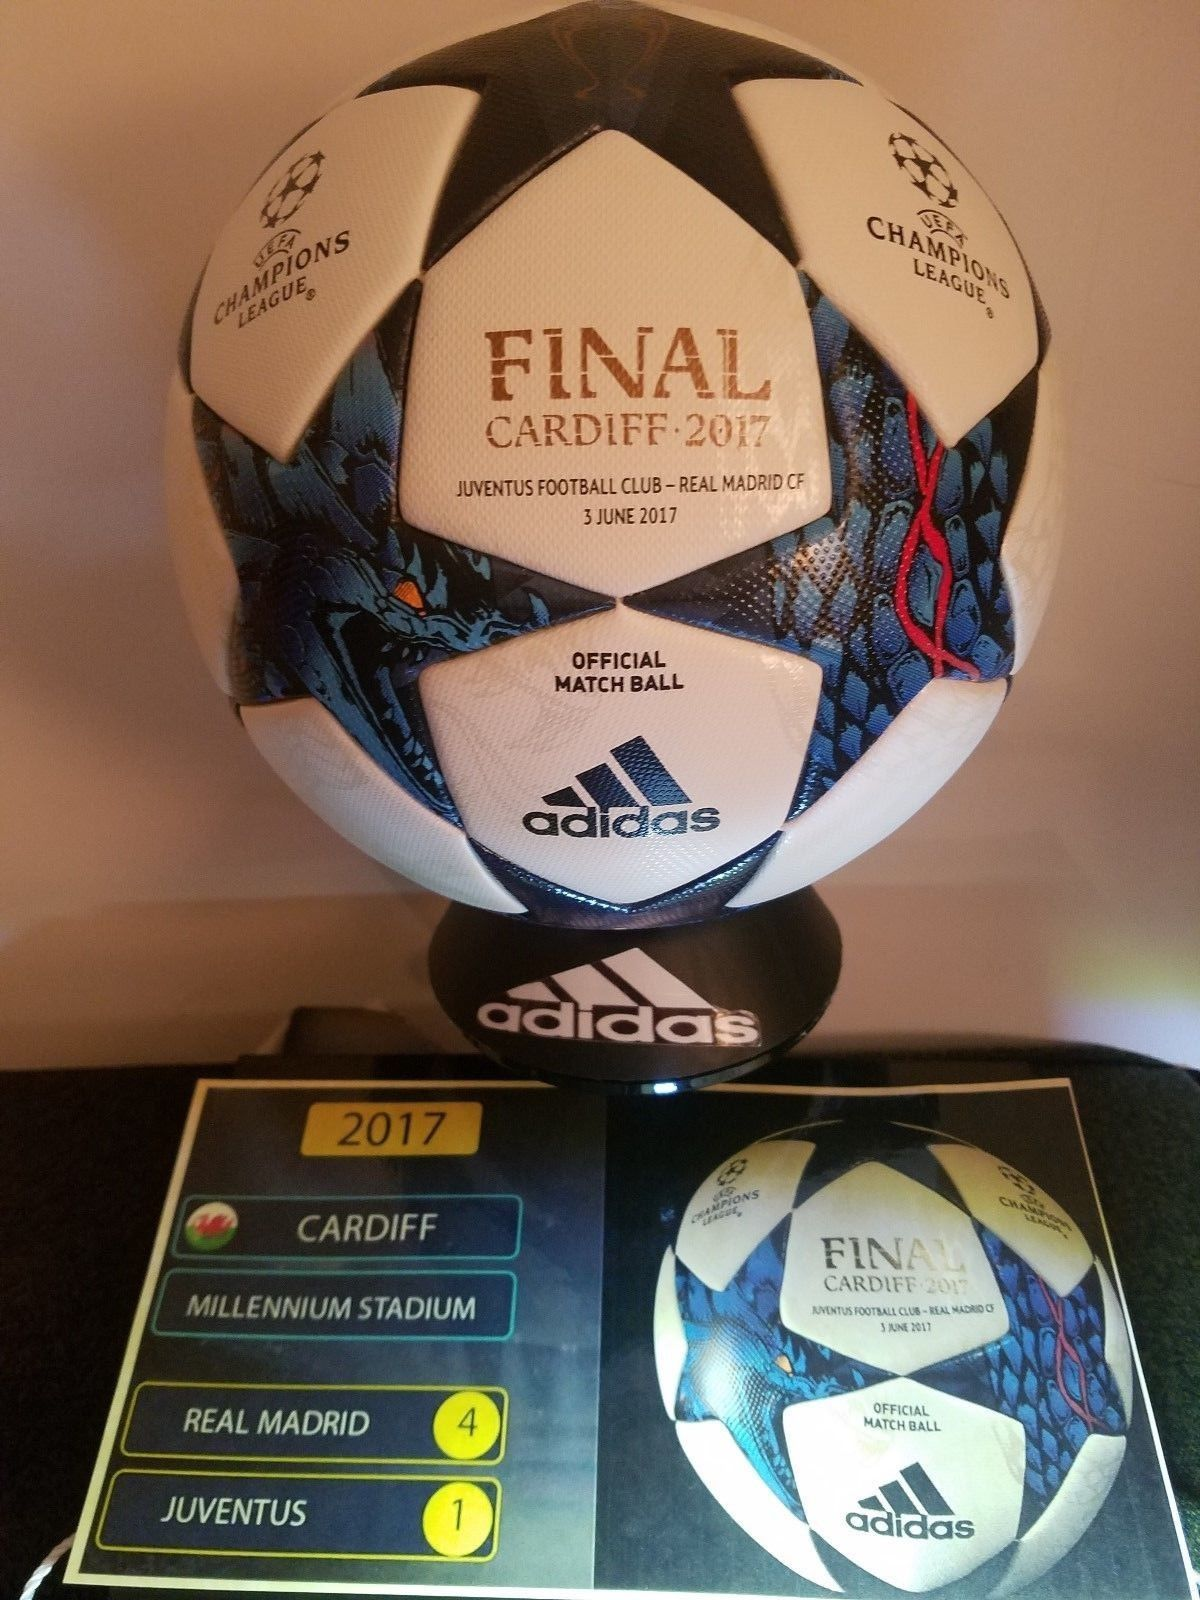 ebaf0d249b1 Balls 20863  Adidas Uefa-Champions League Finale Cardiff - Official Soccer  Match Ball - 2017 -  BUY IT NOW ONLY   650 on  eBay  balls  adidas  league  ...